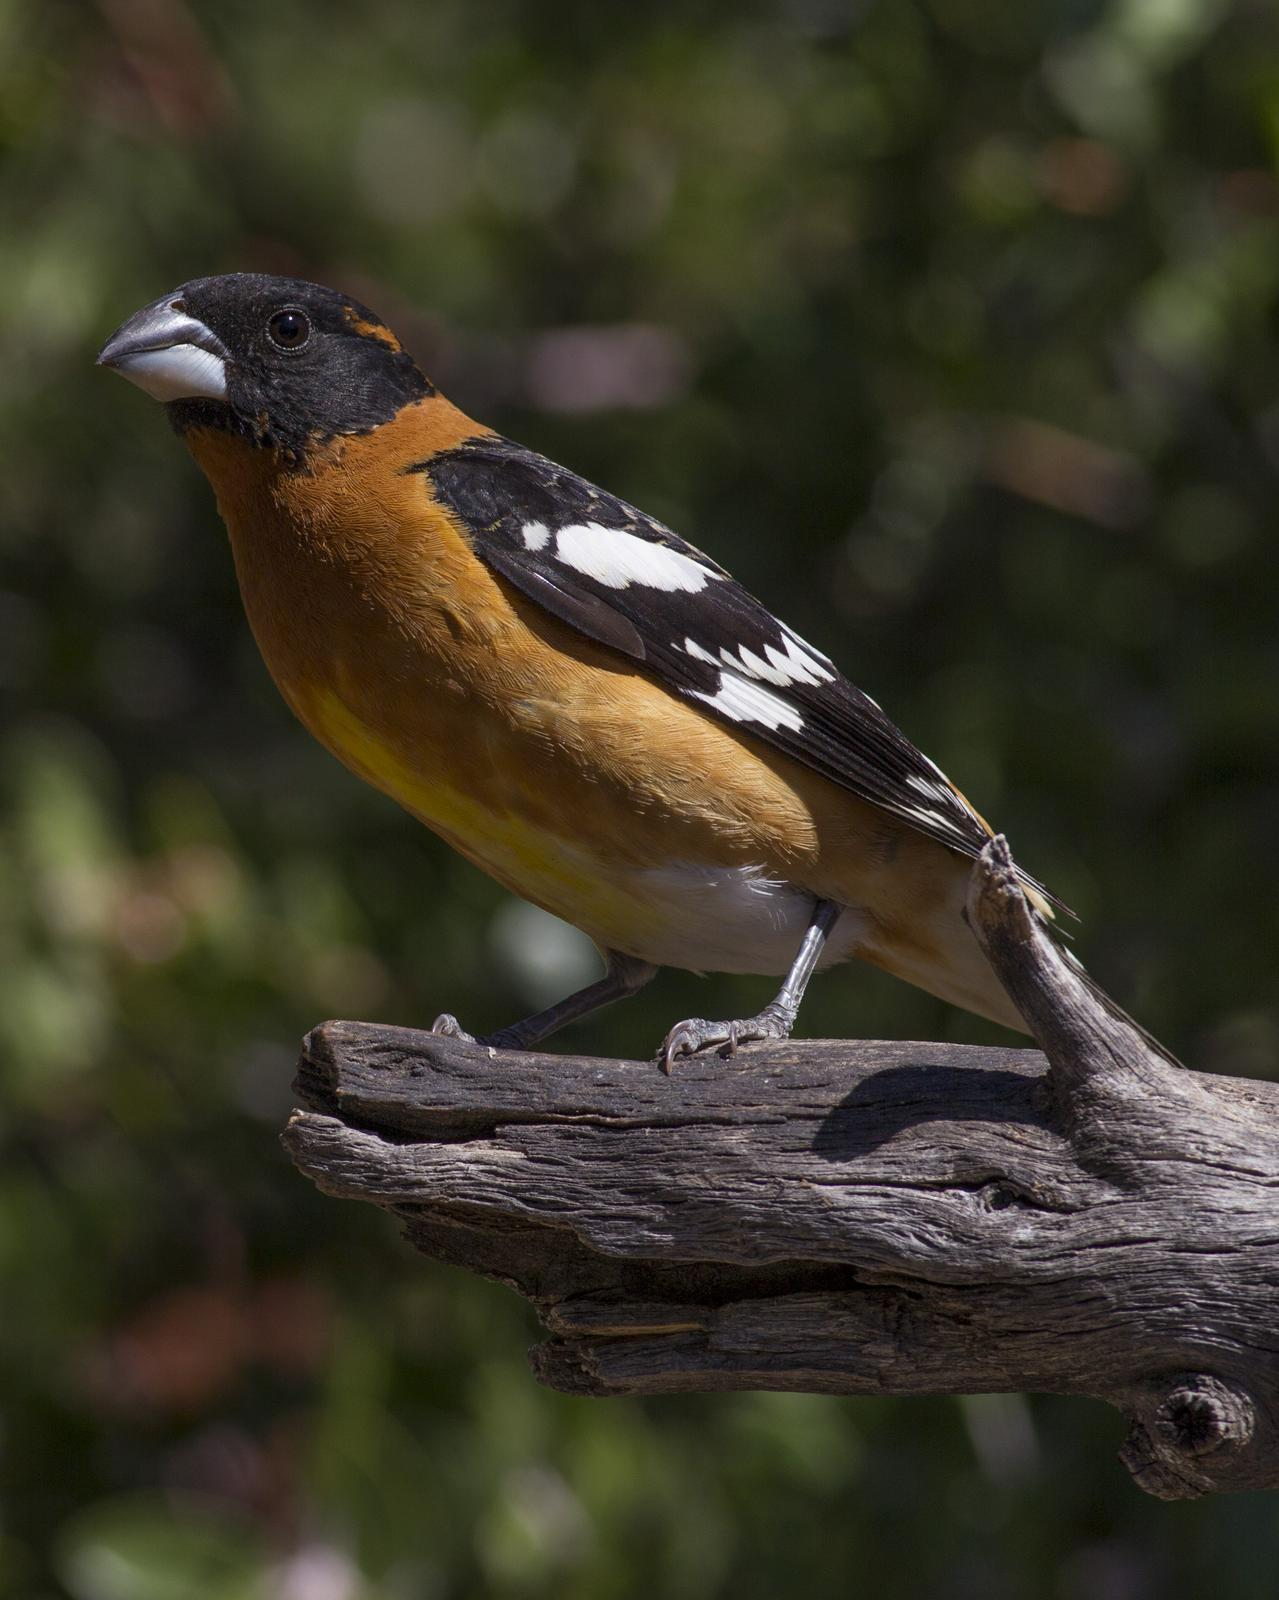 Black-headed Grosbeak Photo by Jeff Moore